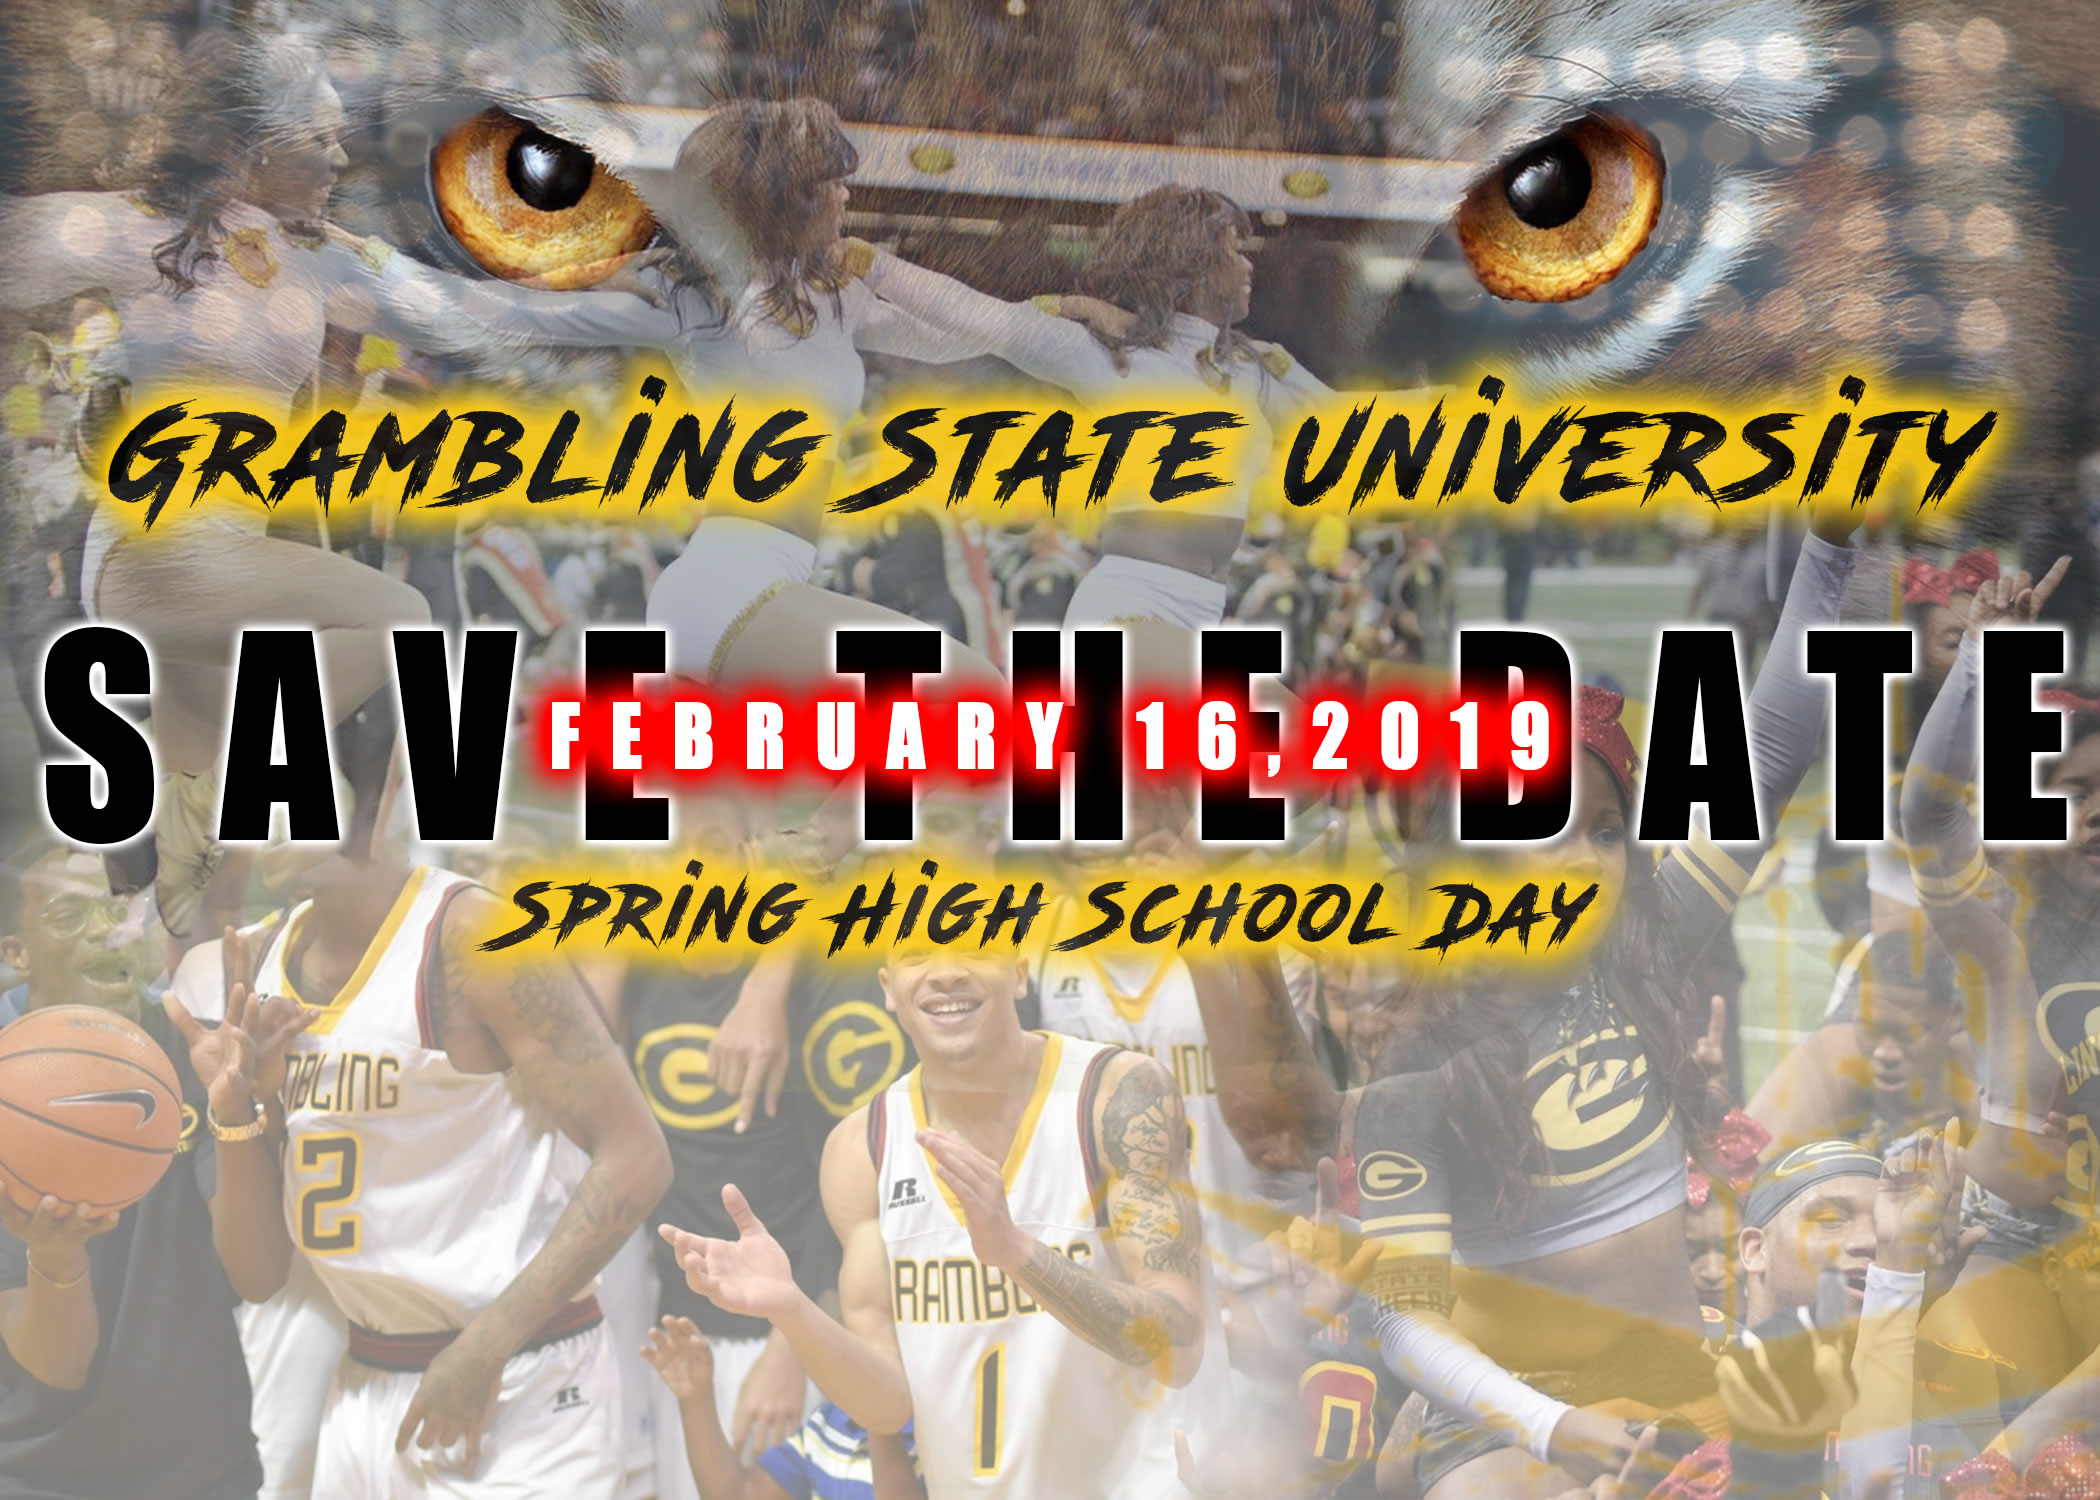 Spring 2019 High School Day - Save the Date Flyer